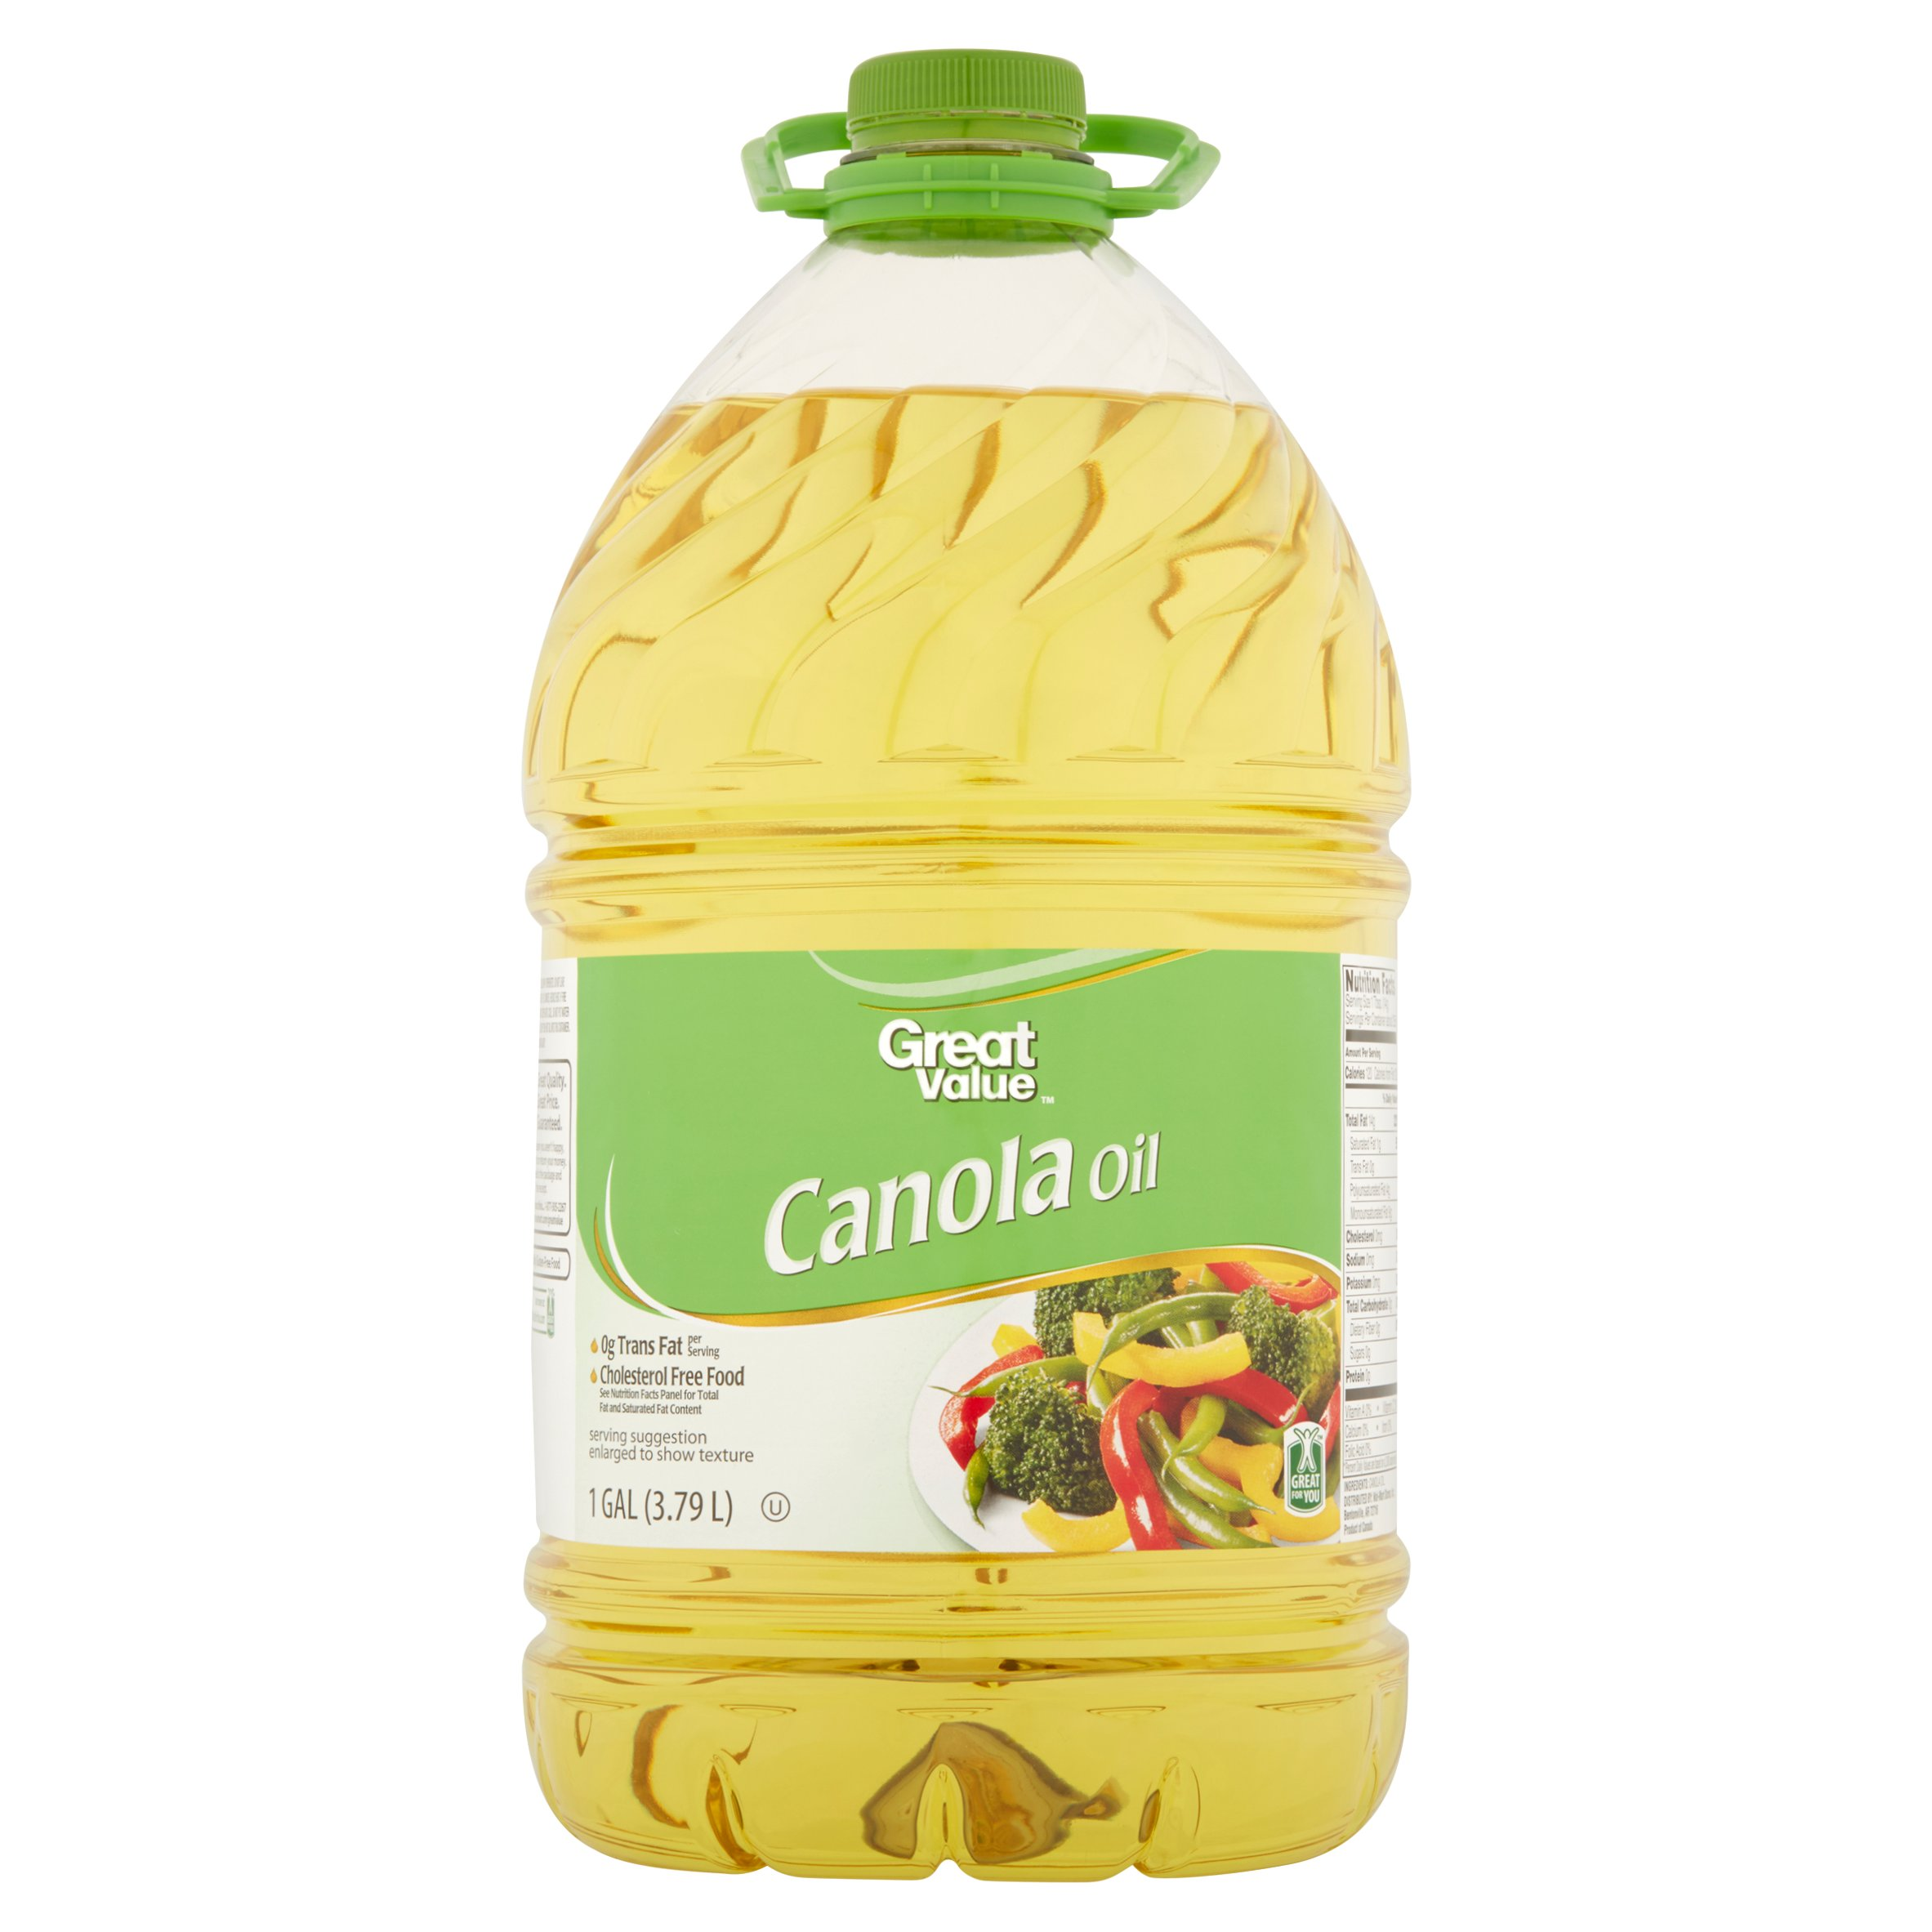 Great Value Canola Oil, 128 oz